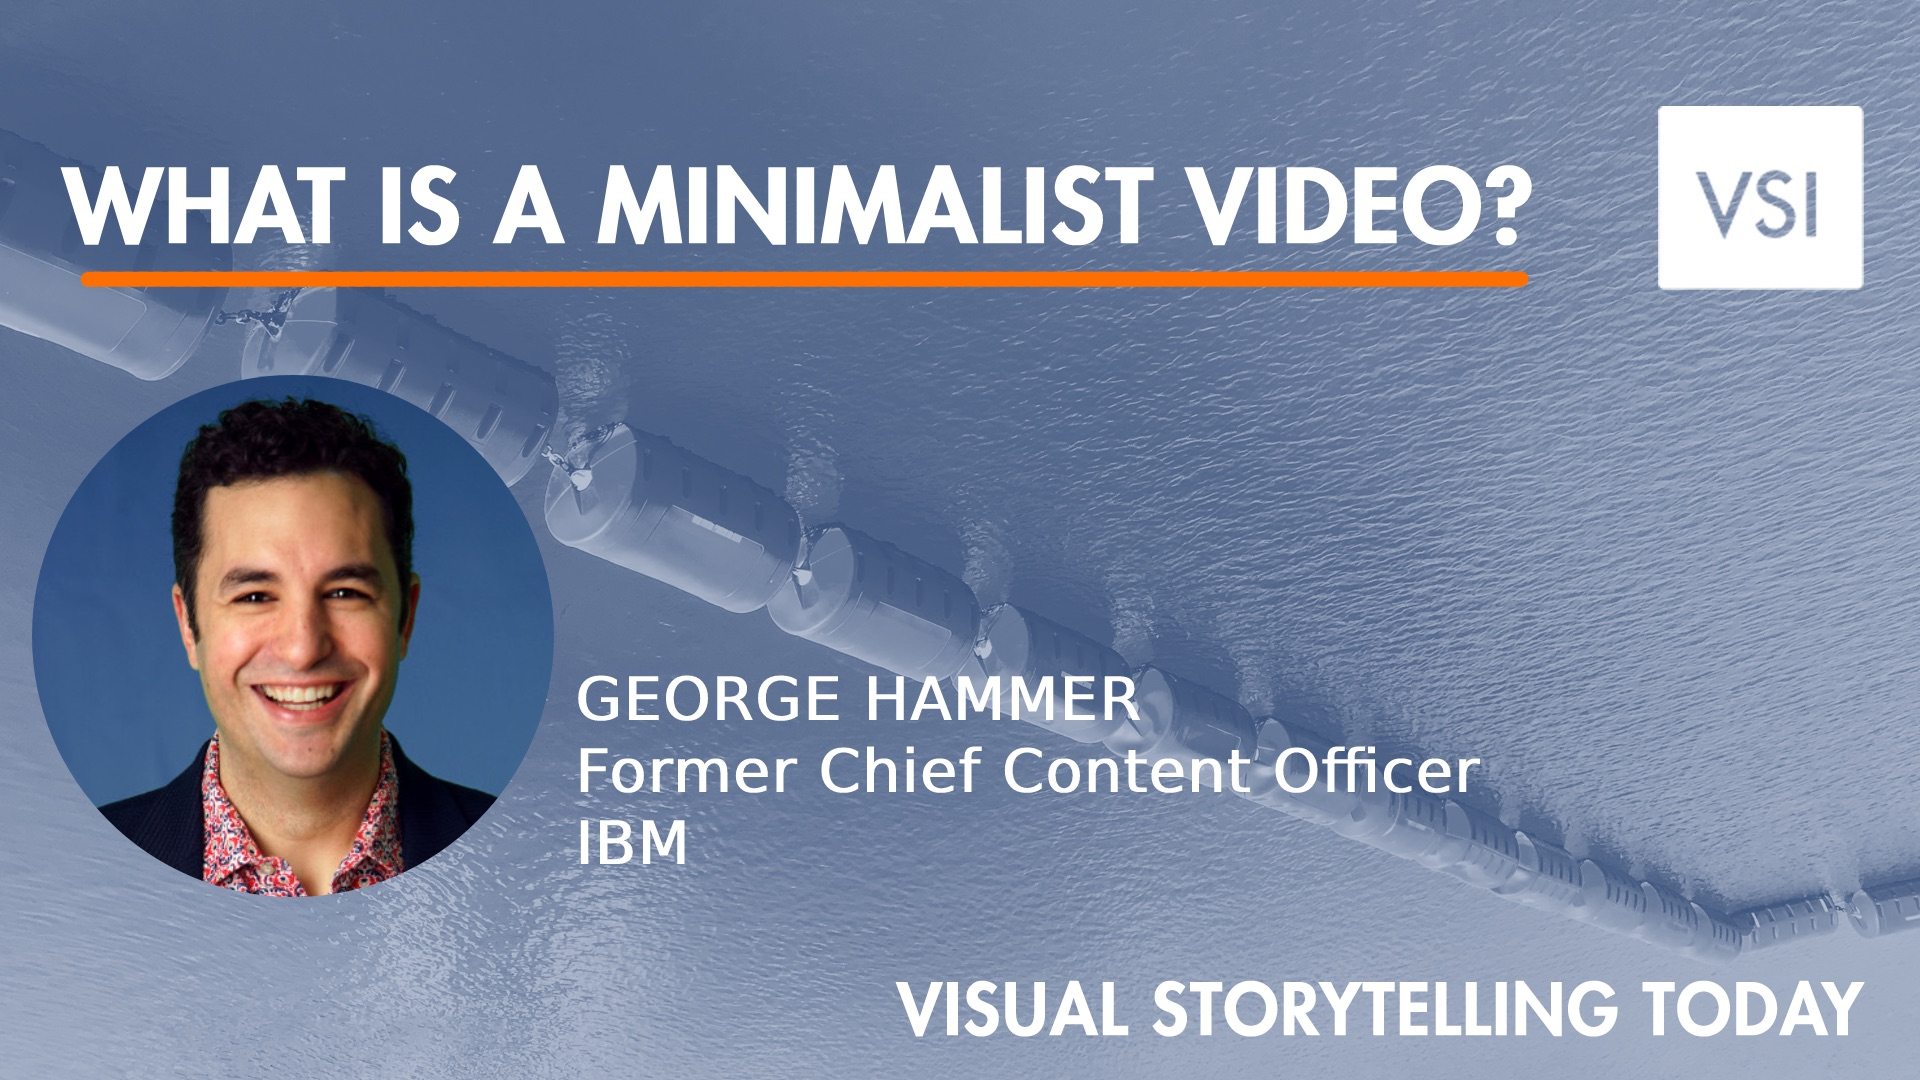 What is minimalist video?